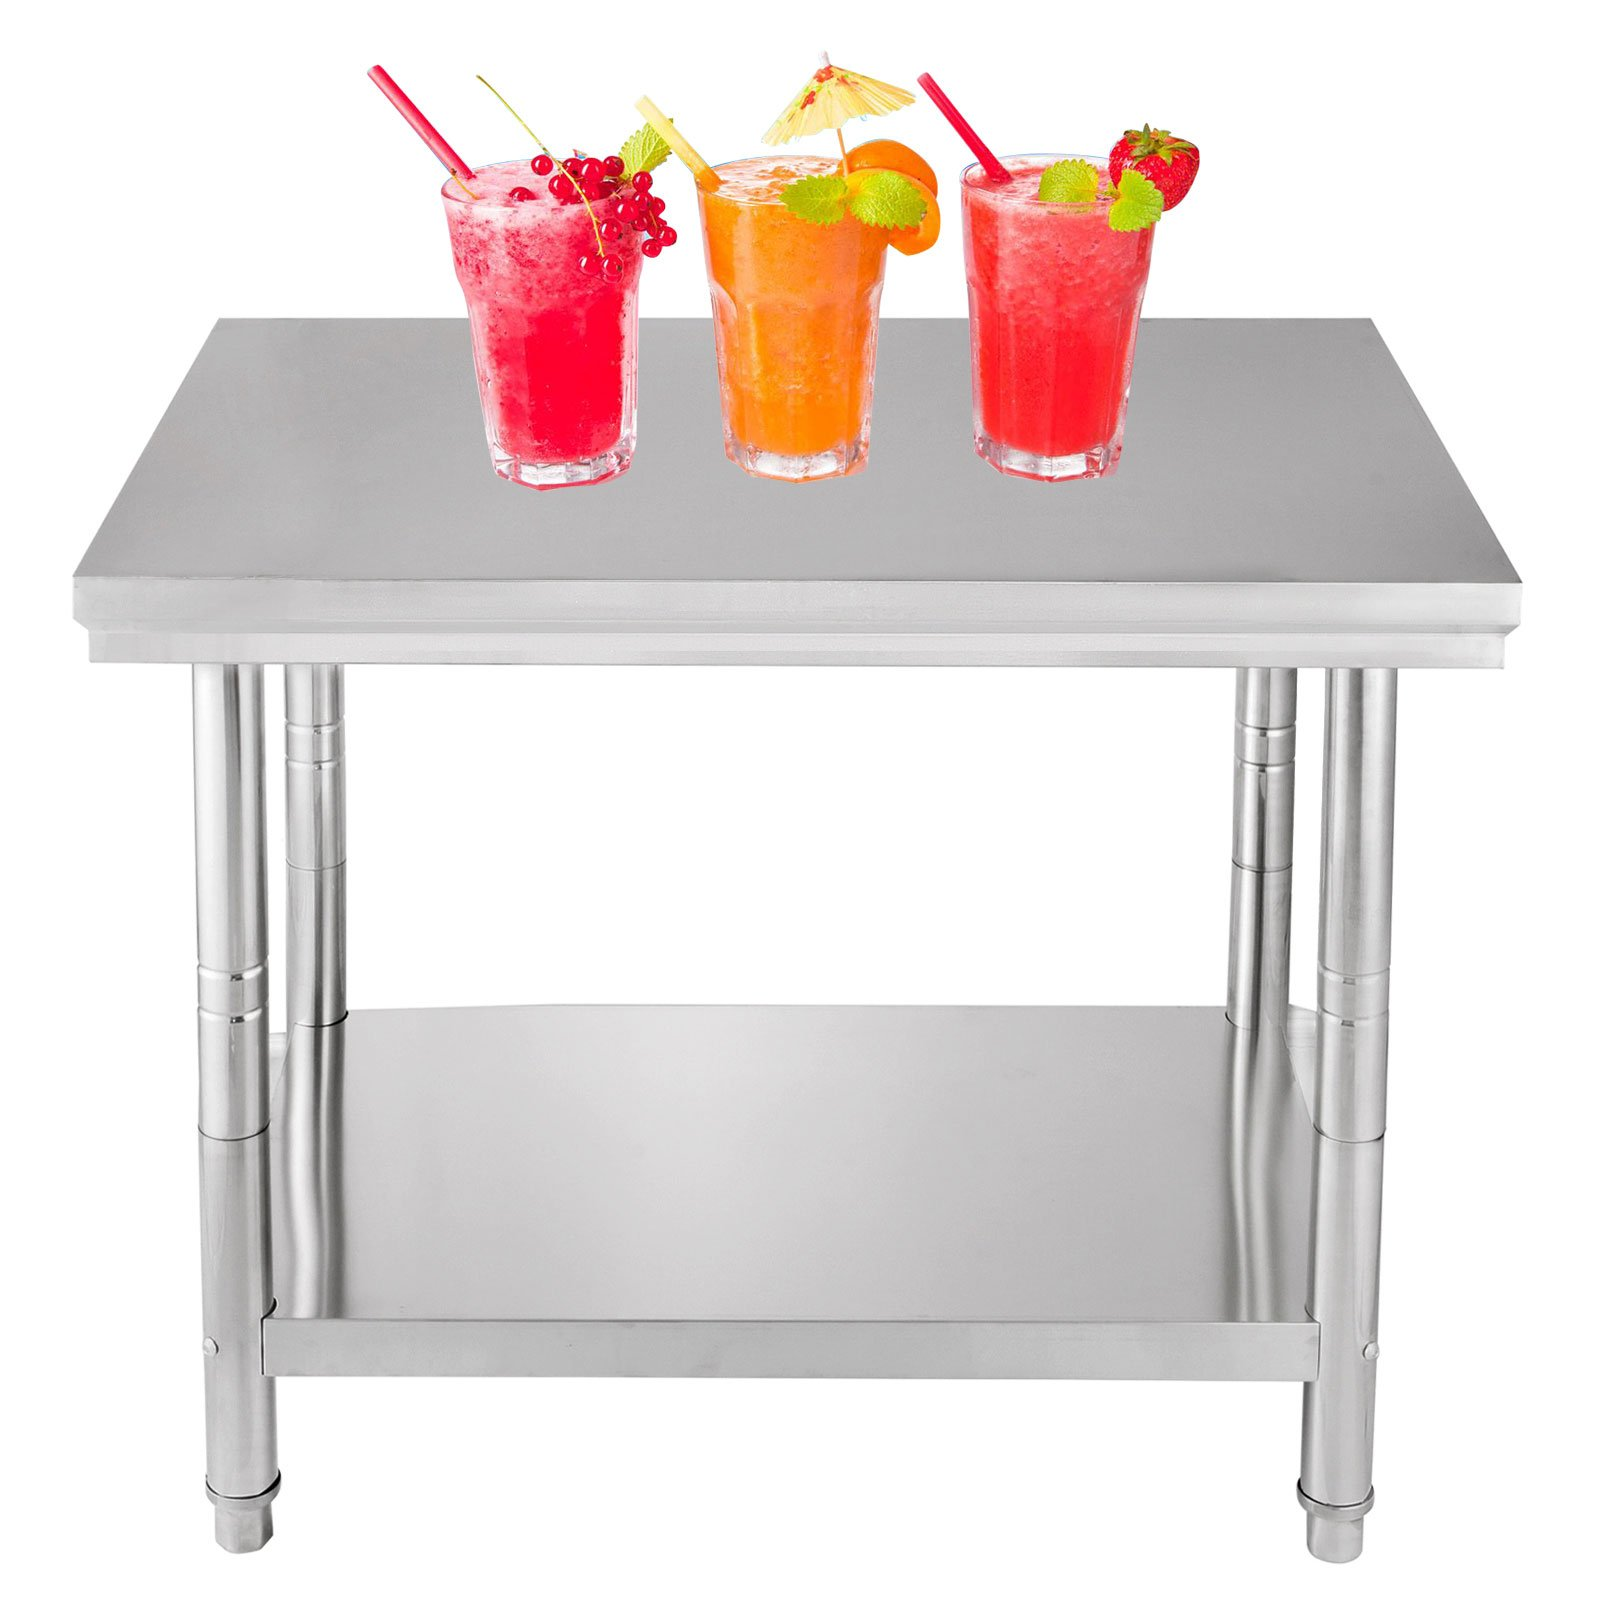 OrangeA 30-Inch X 24-Inch NSF Stainless Steel Work Table Prep Work Table for Commercial Kitchen Restaurant (30x24x32 inch)